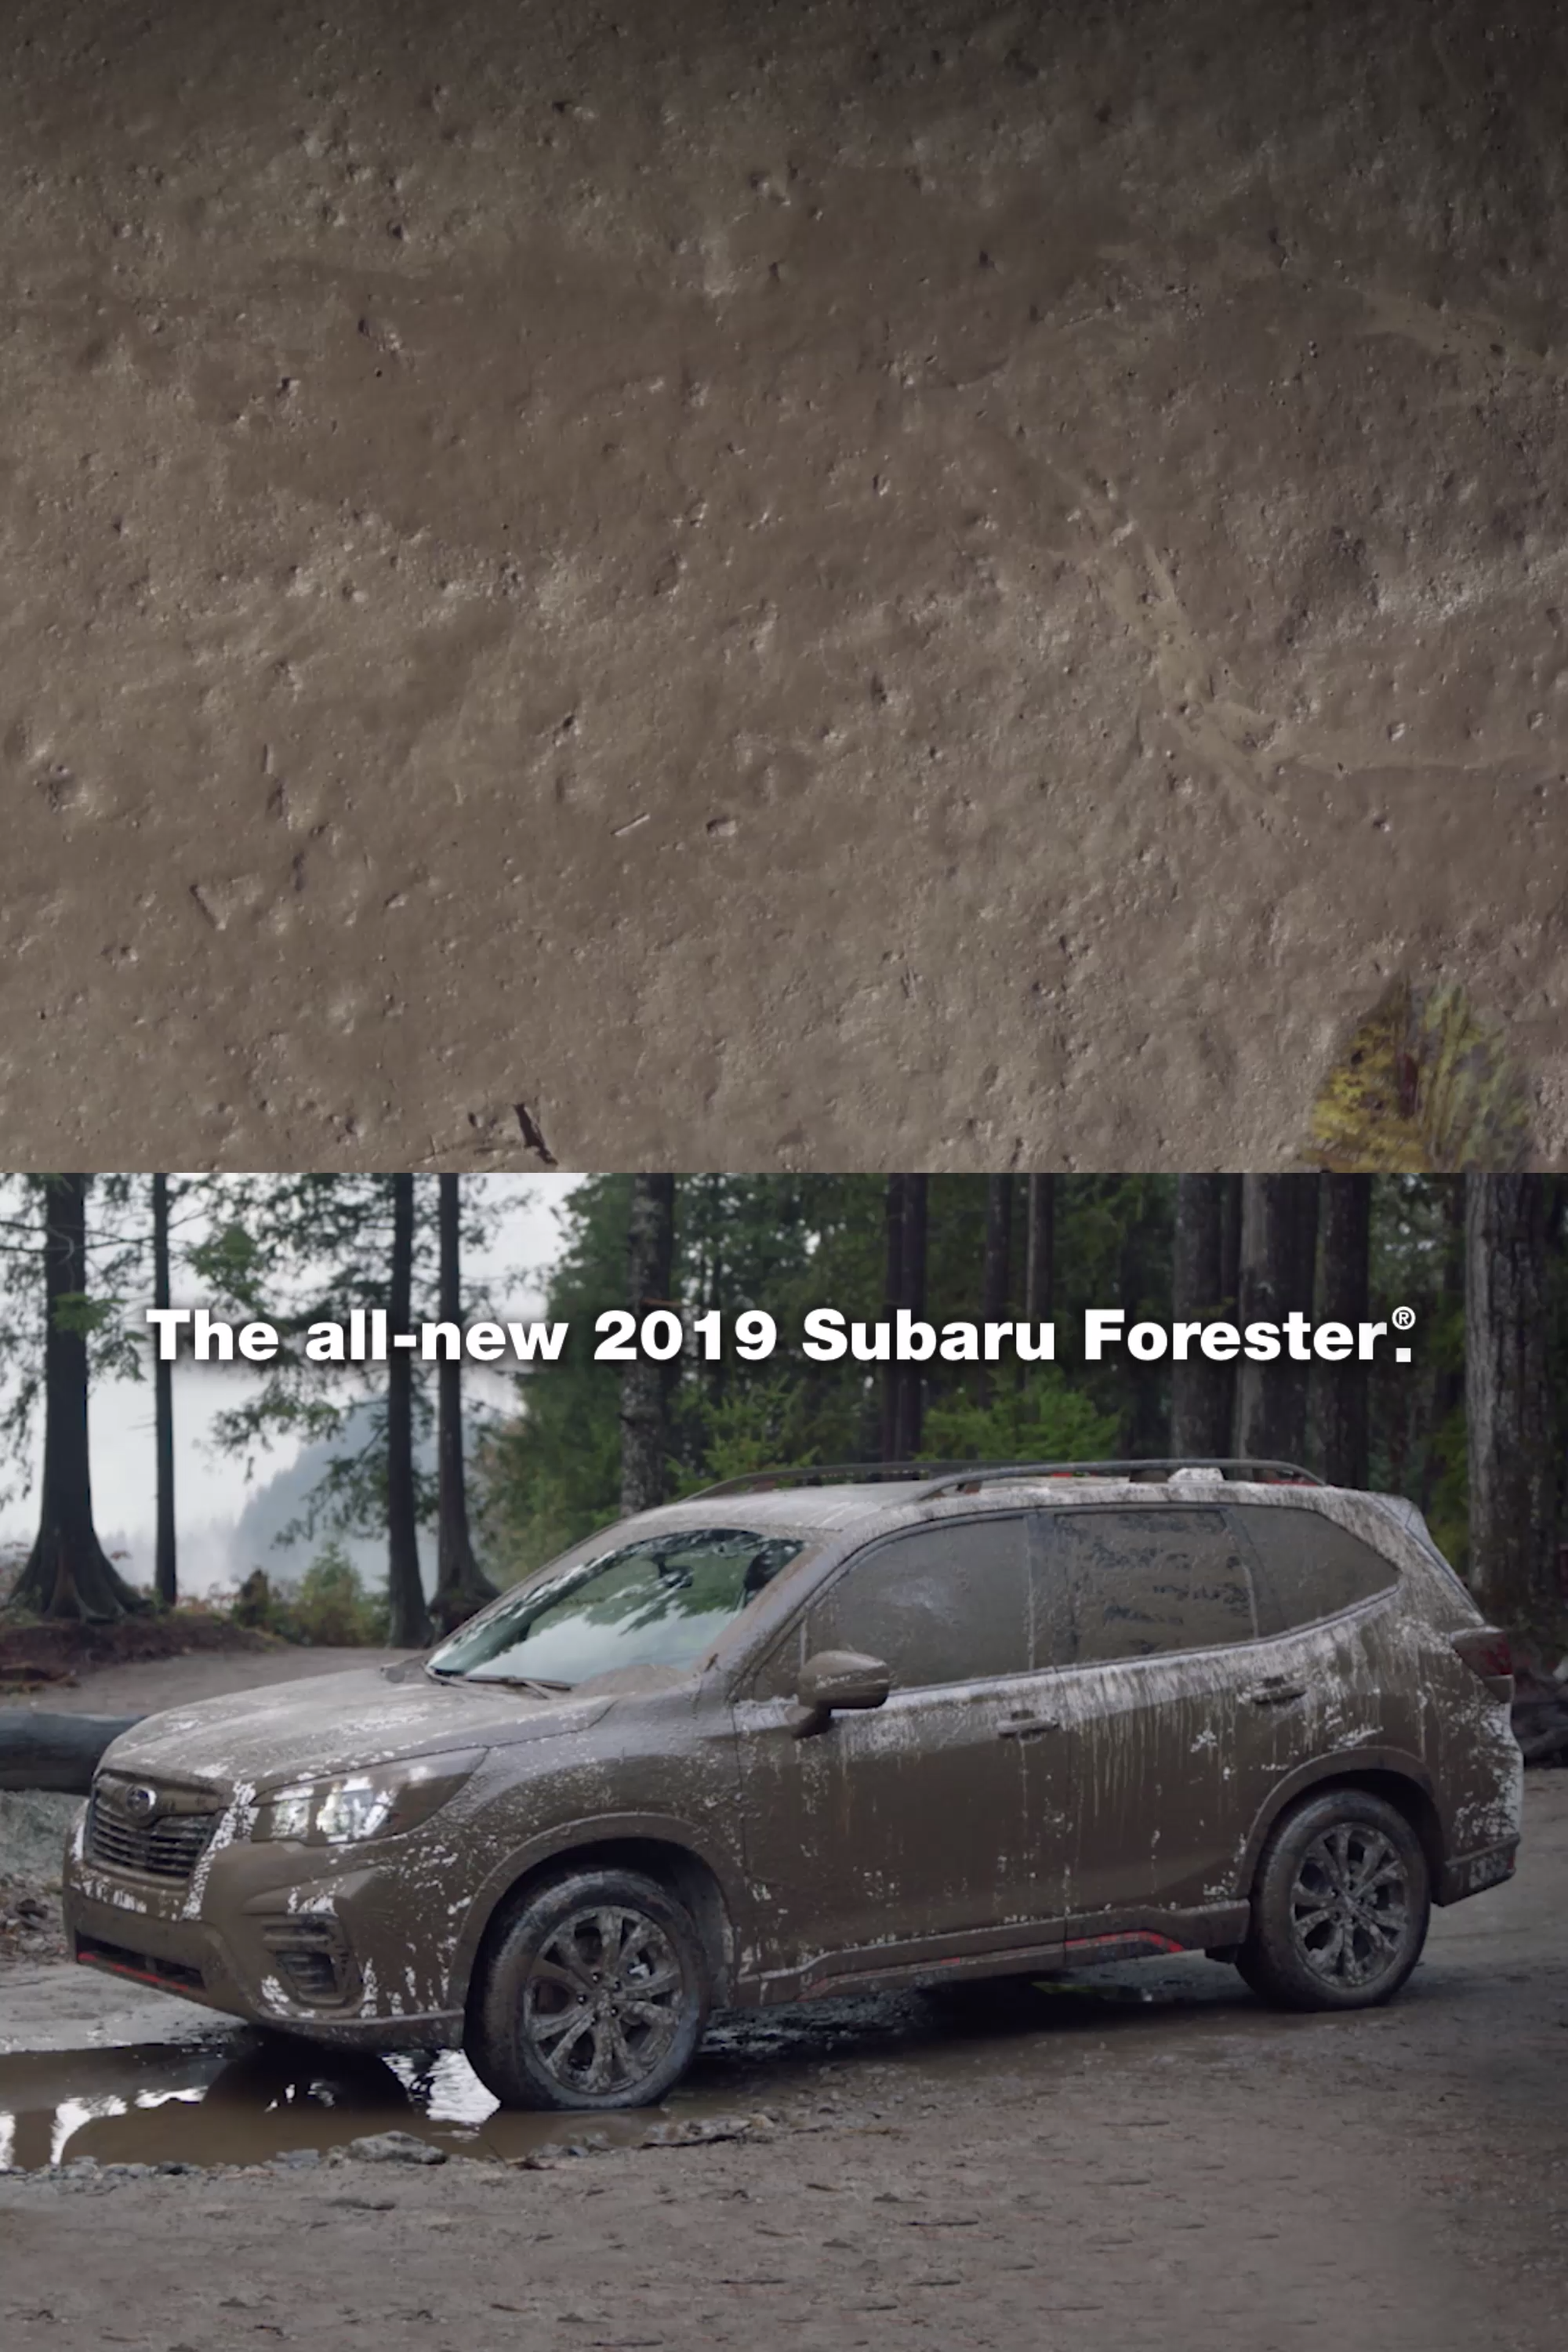 50 All New Subaru Forester 2019 Ground Clearance Images